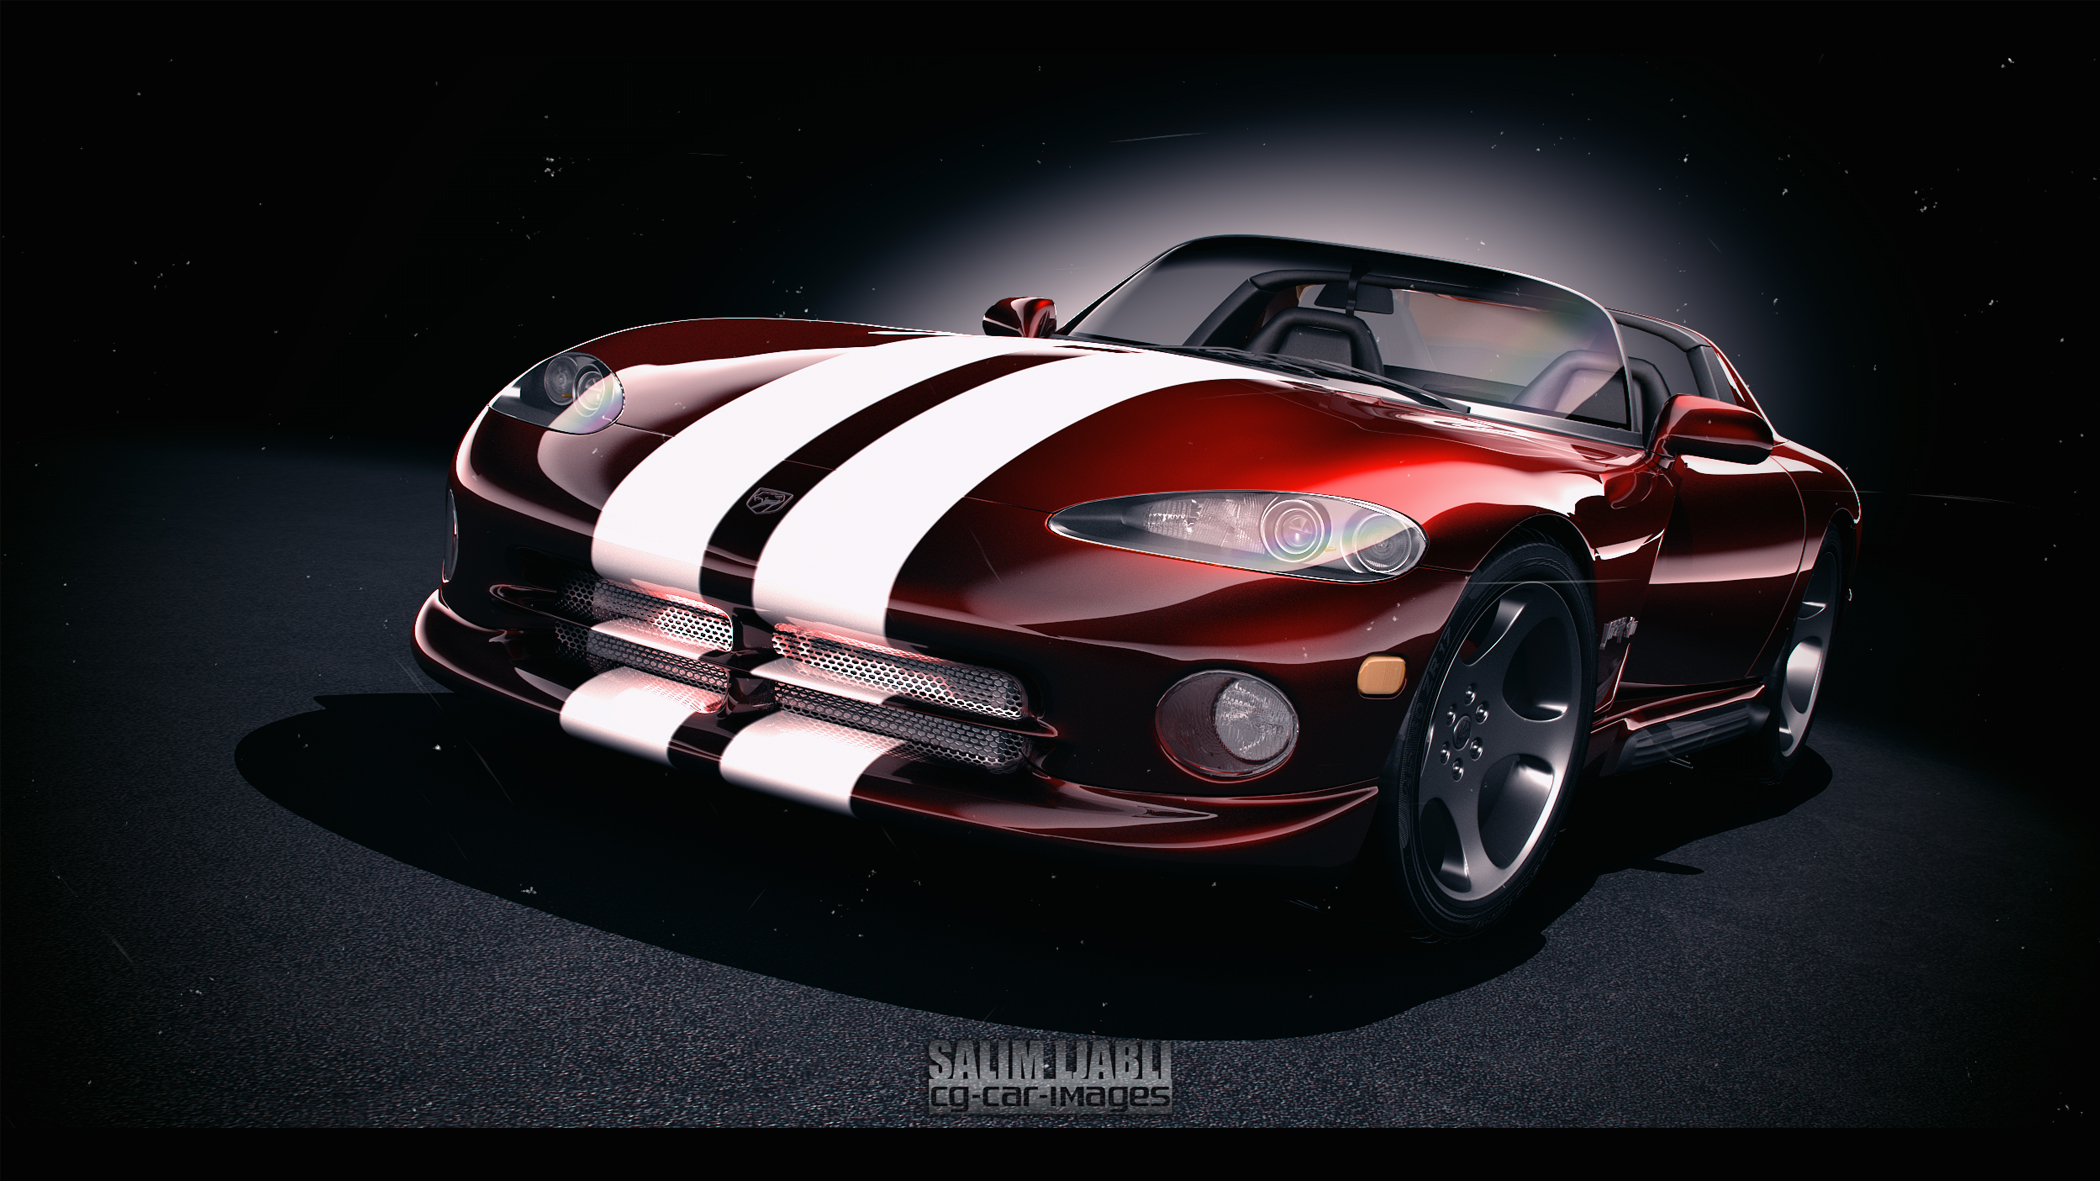 Dodge viper by salimljabli on deviantart dodge viper by salimljabli dodge viper by salimljabli sciox Image collections